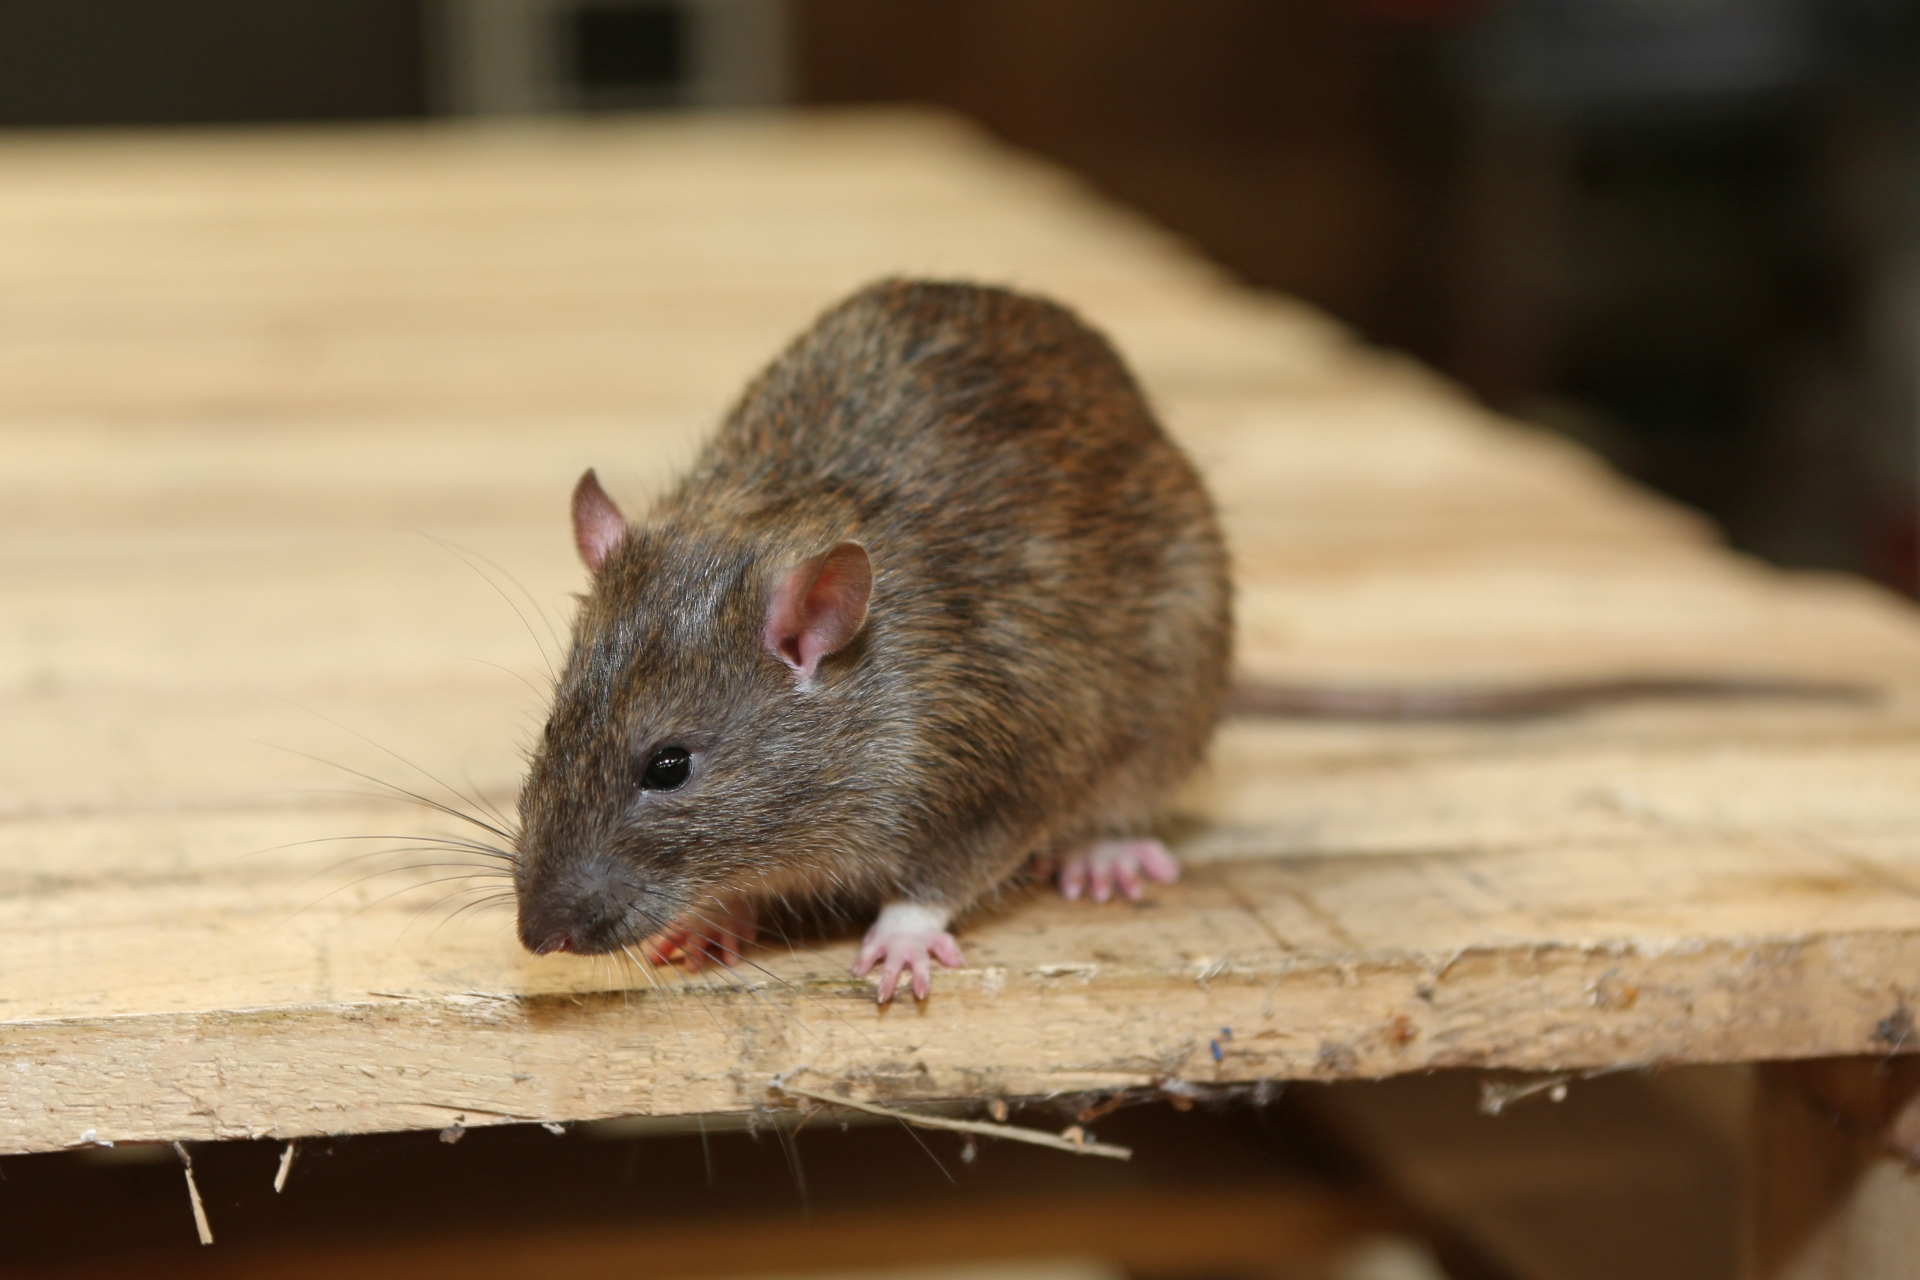 Rat Infestation, Pest Control in Kensal Green, NW10. Call Now 020 8166 9746